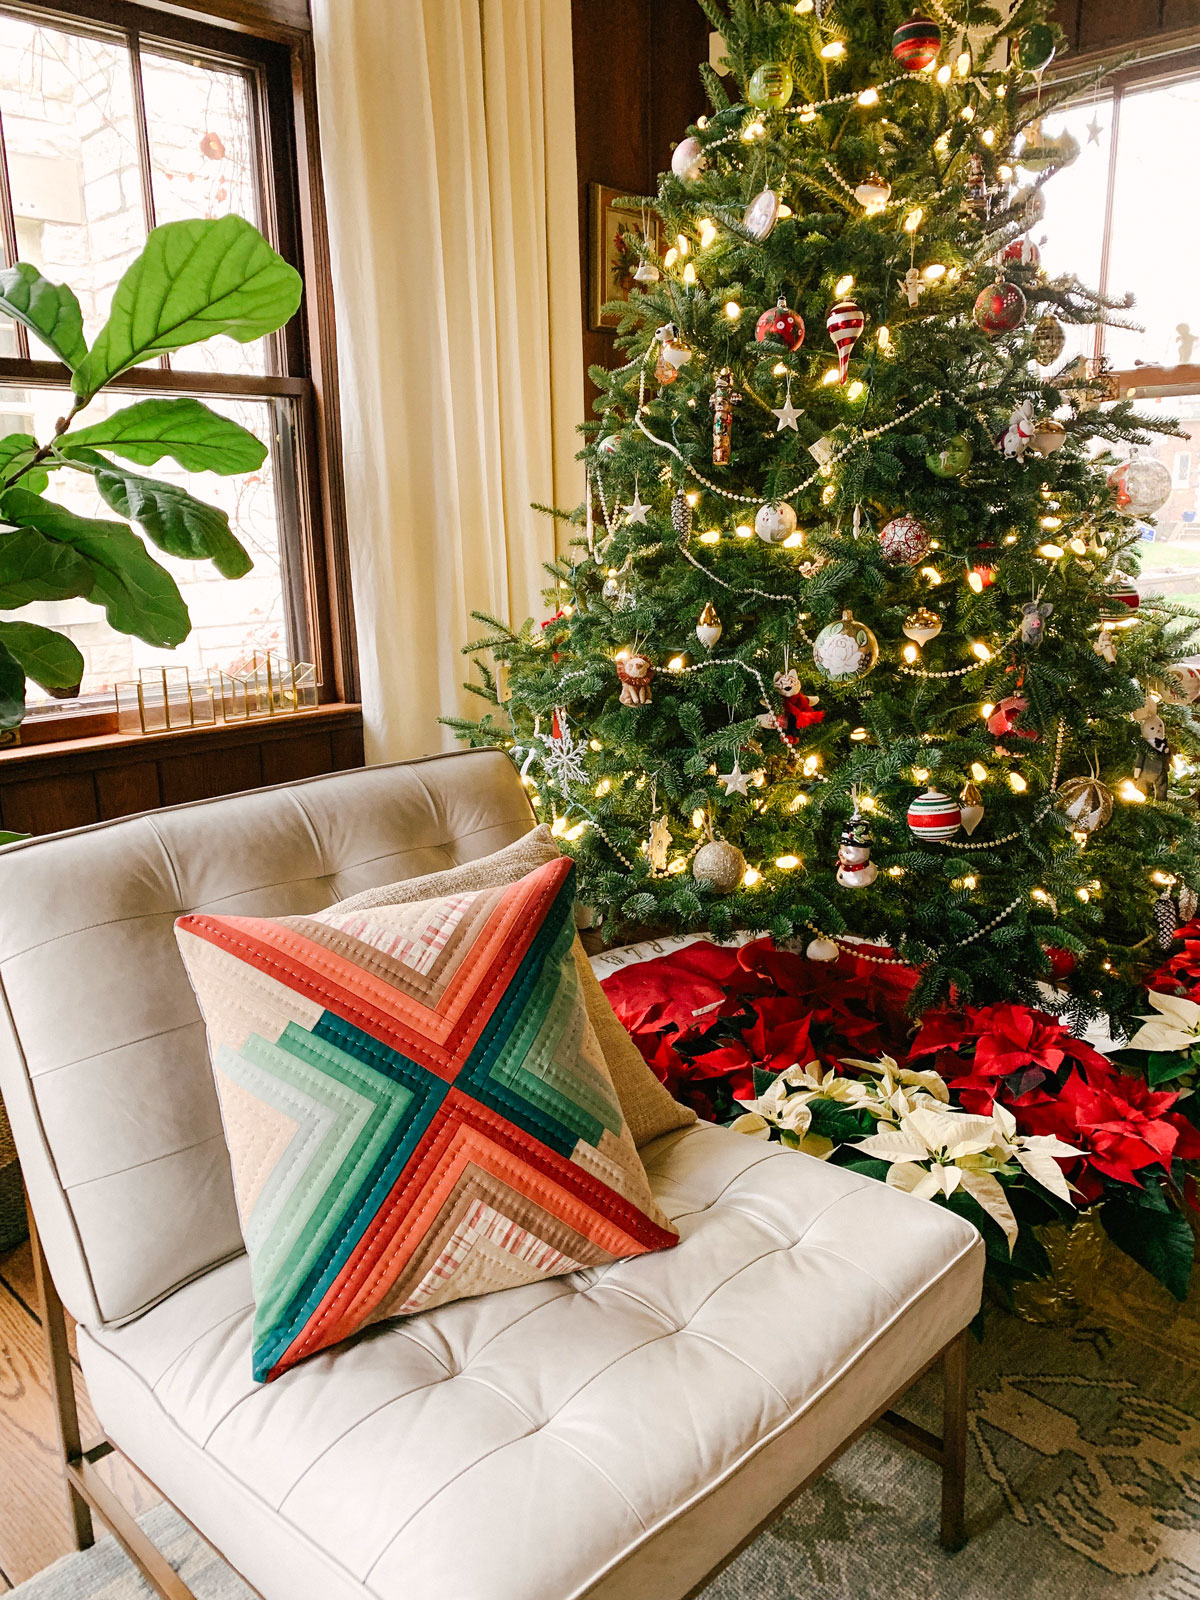 5 Small and Inexpensive DIY Sewing Christmas Gifts! Make a quilted pillow with red and green fabric. suzyquilts.com #Christmaspillow #pillowpattern